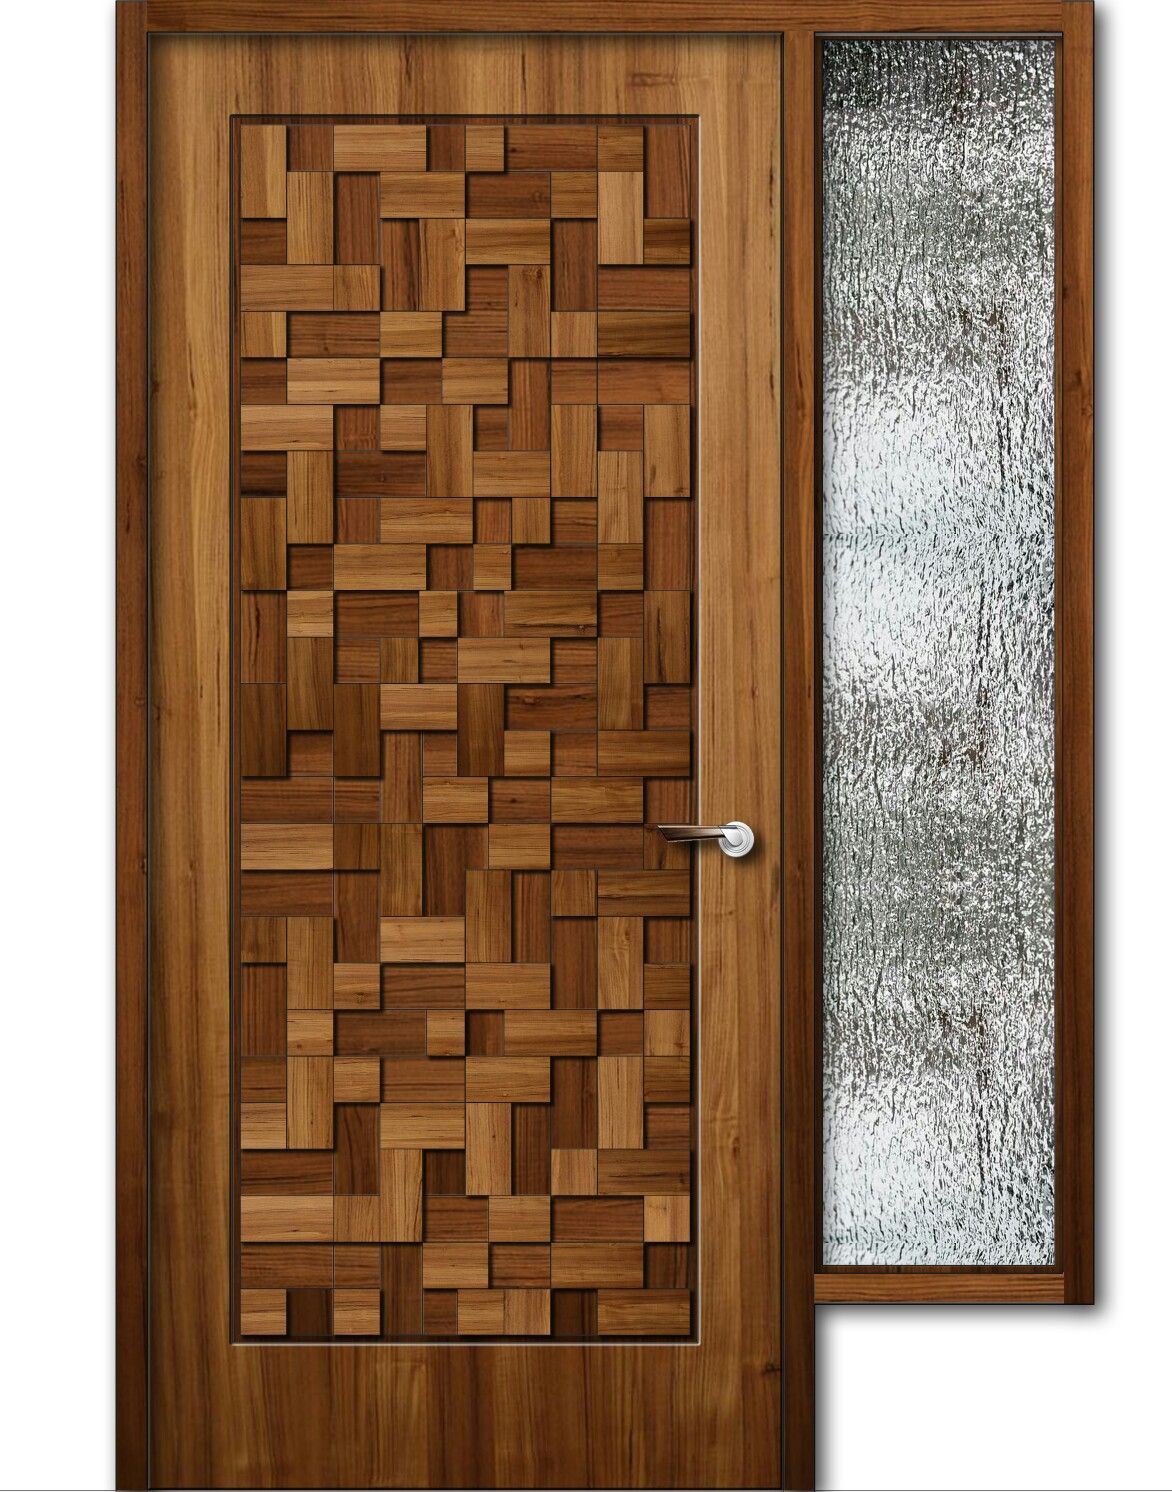 teak wood finish wooden door with window 8feet height doors rh pinterest com door design pakistan door design images